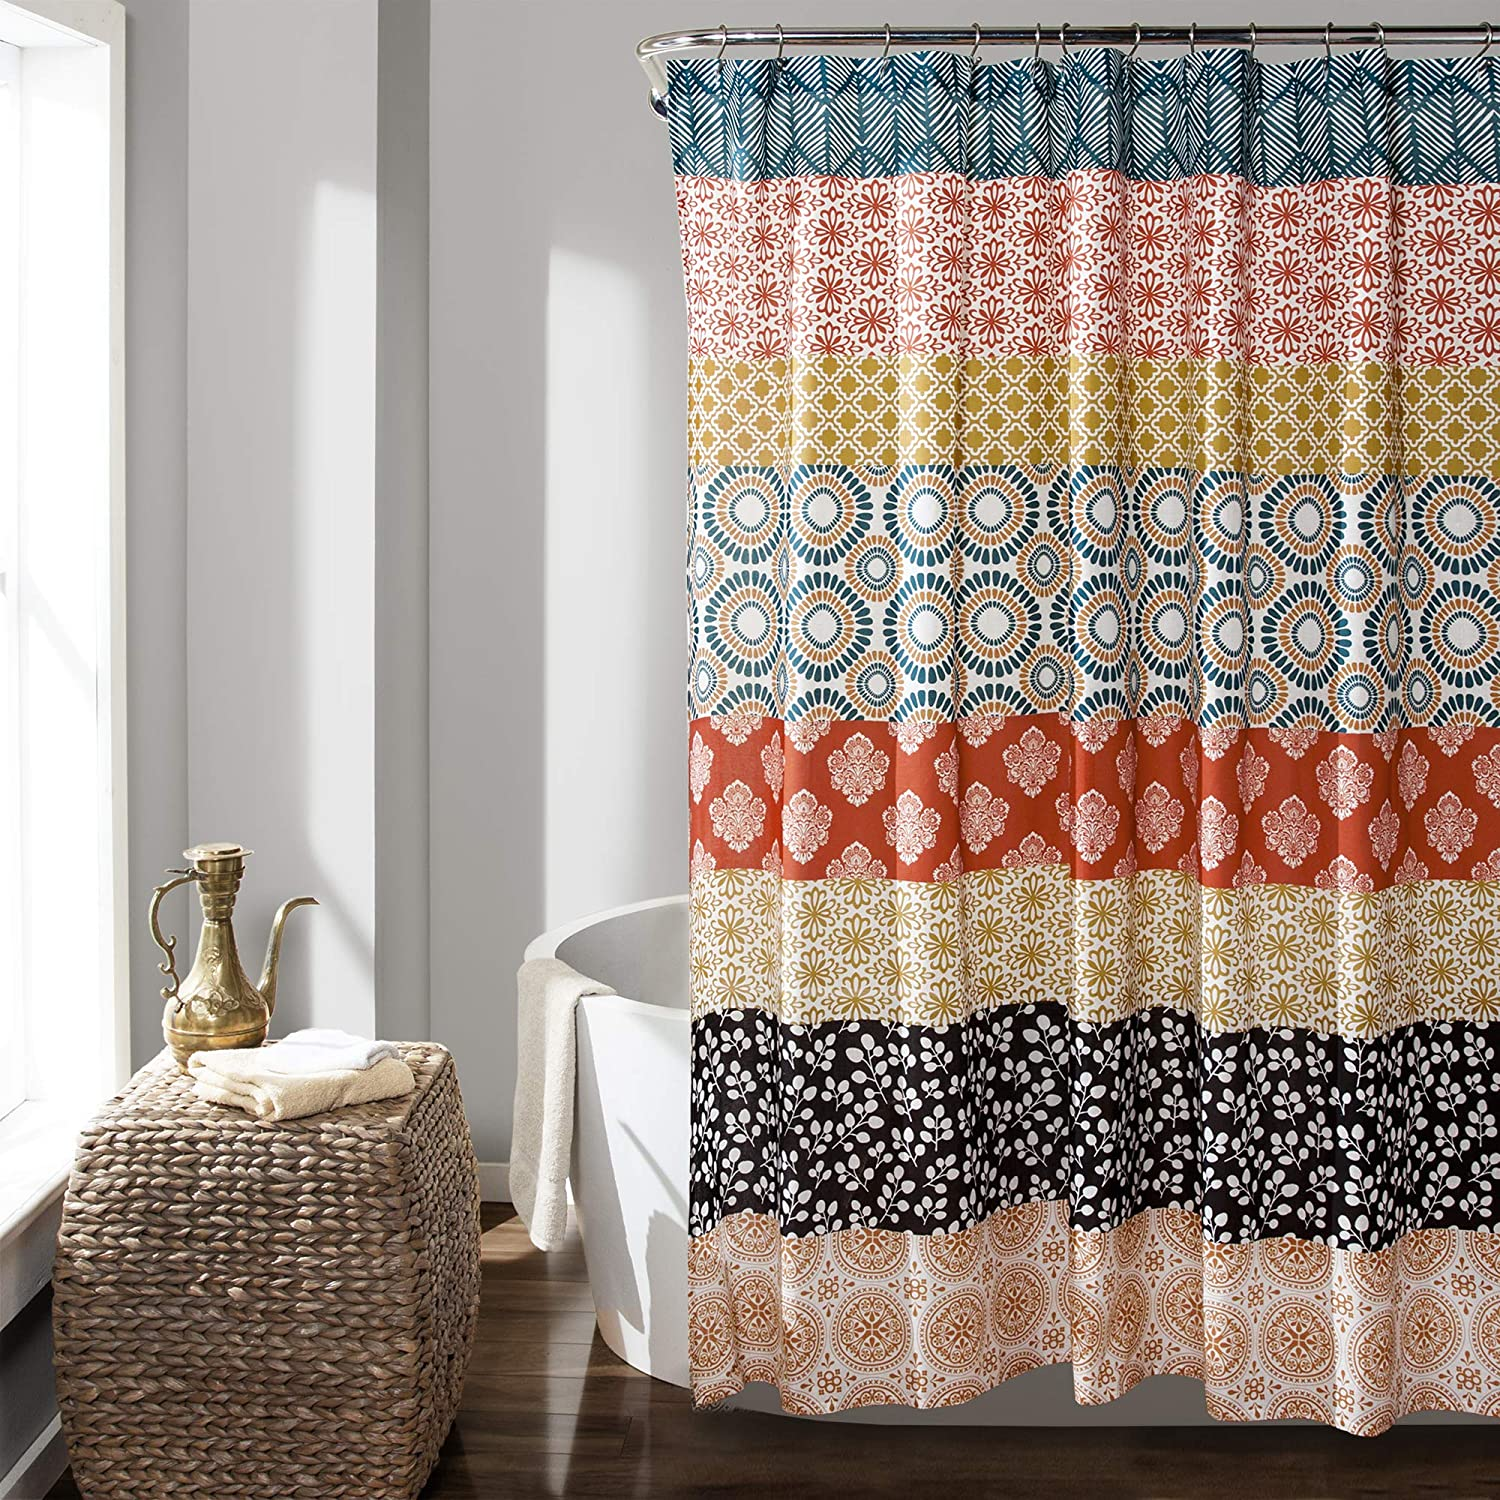 "Lush Decor 16T000209 Bohemian Striped Shower Curtain Colorful Bold Design, 72"" x 72"", Turquoise and Orange: Home & Kitchen"